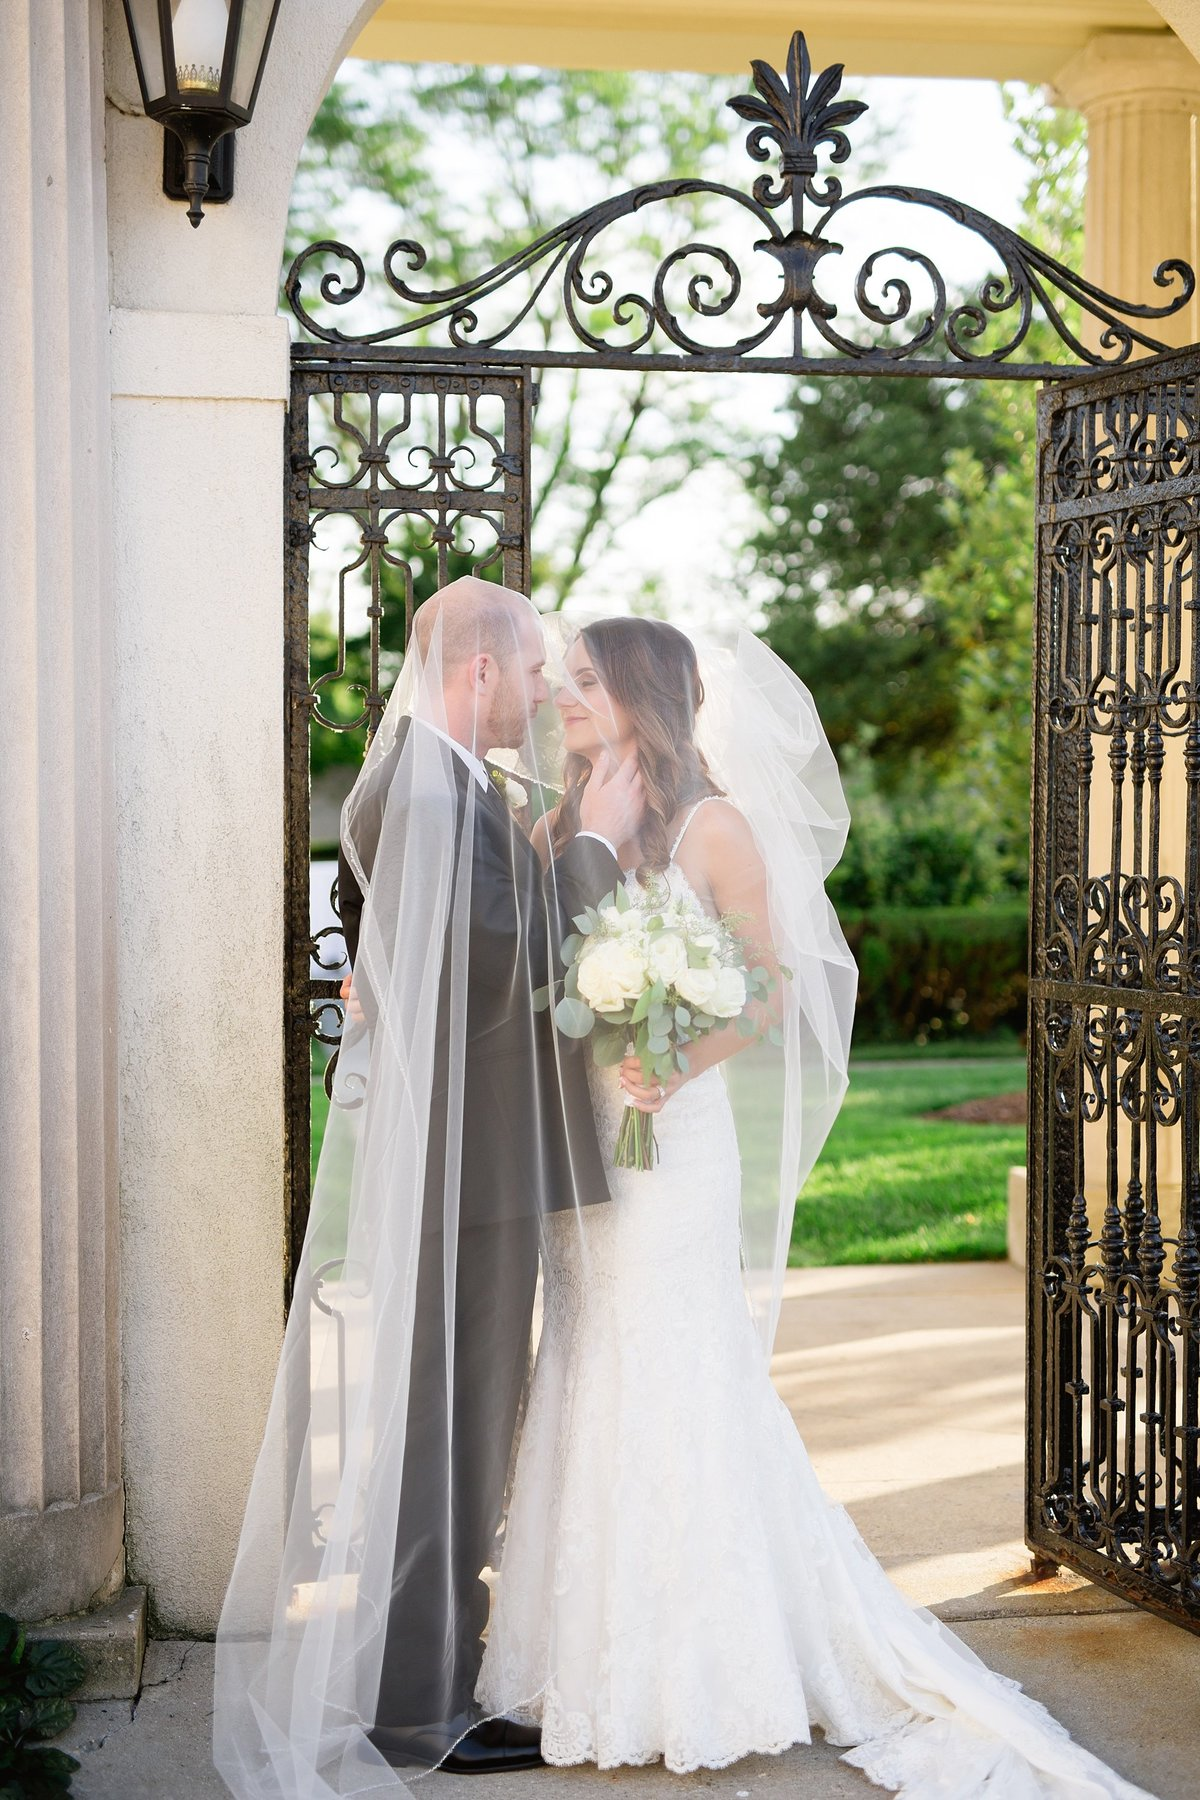 Shuster-Wedding-Grosse-Pointe-War-Memorial-Breanne-Rochelle-Photography107